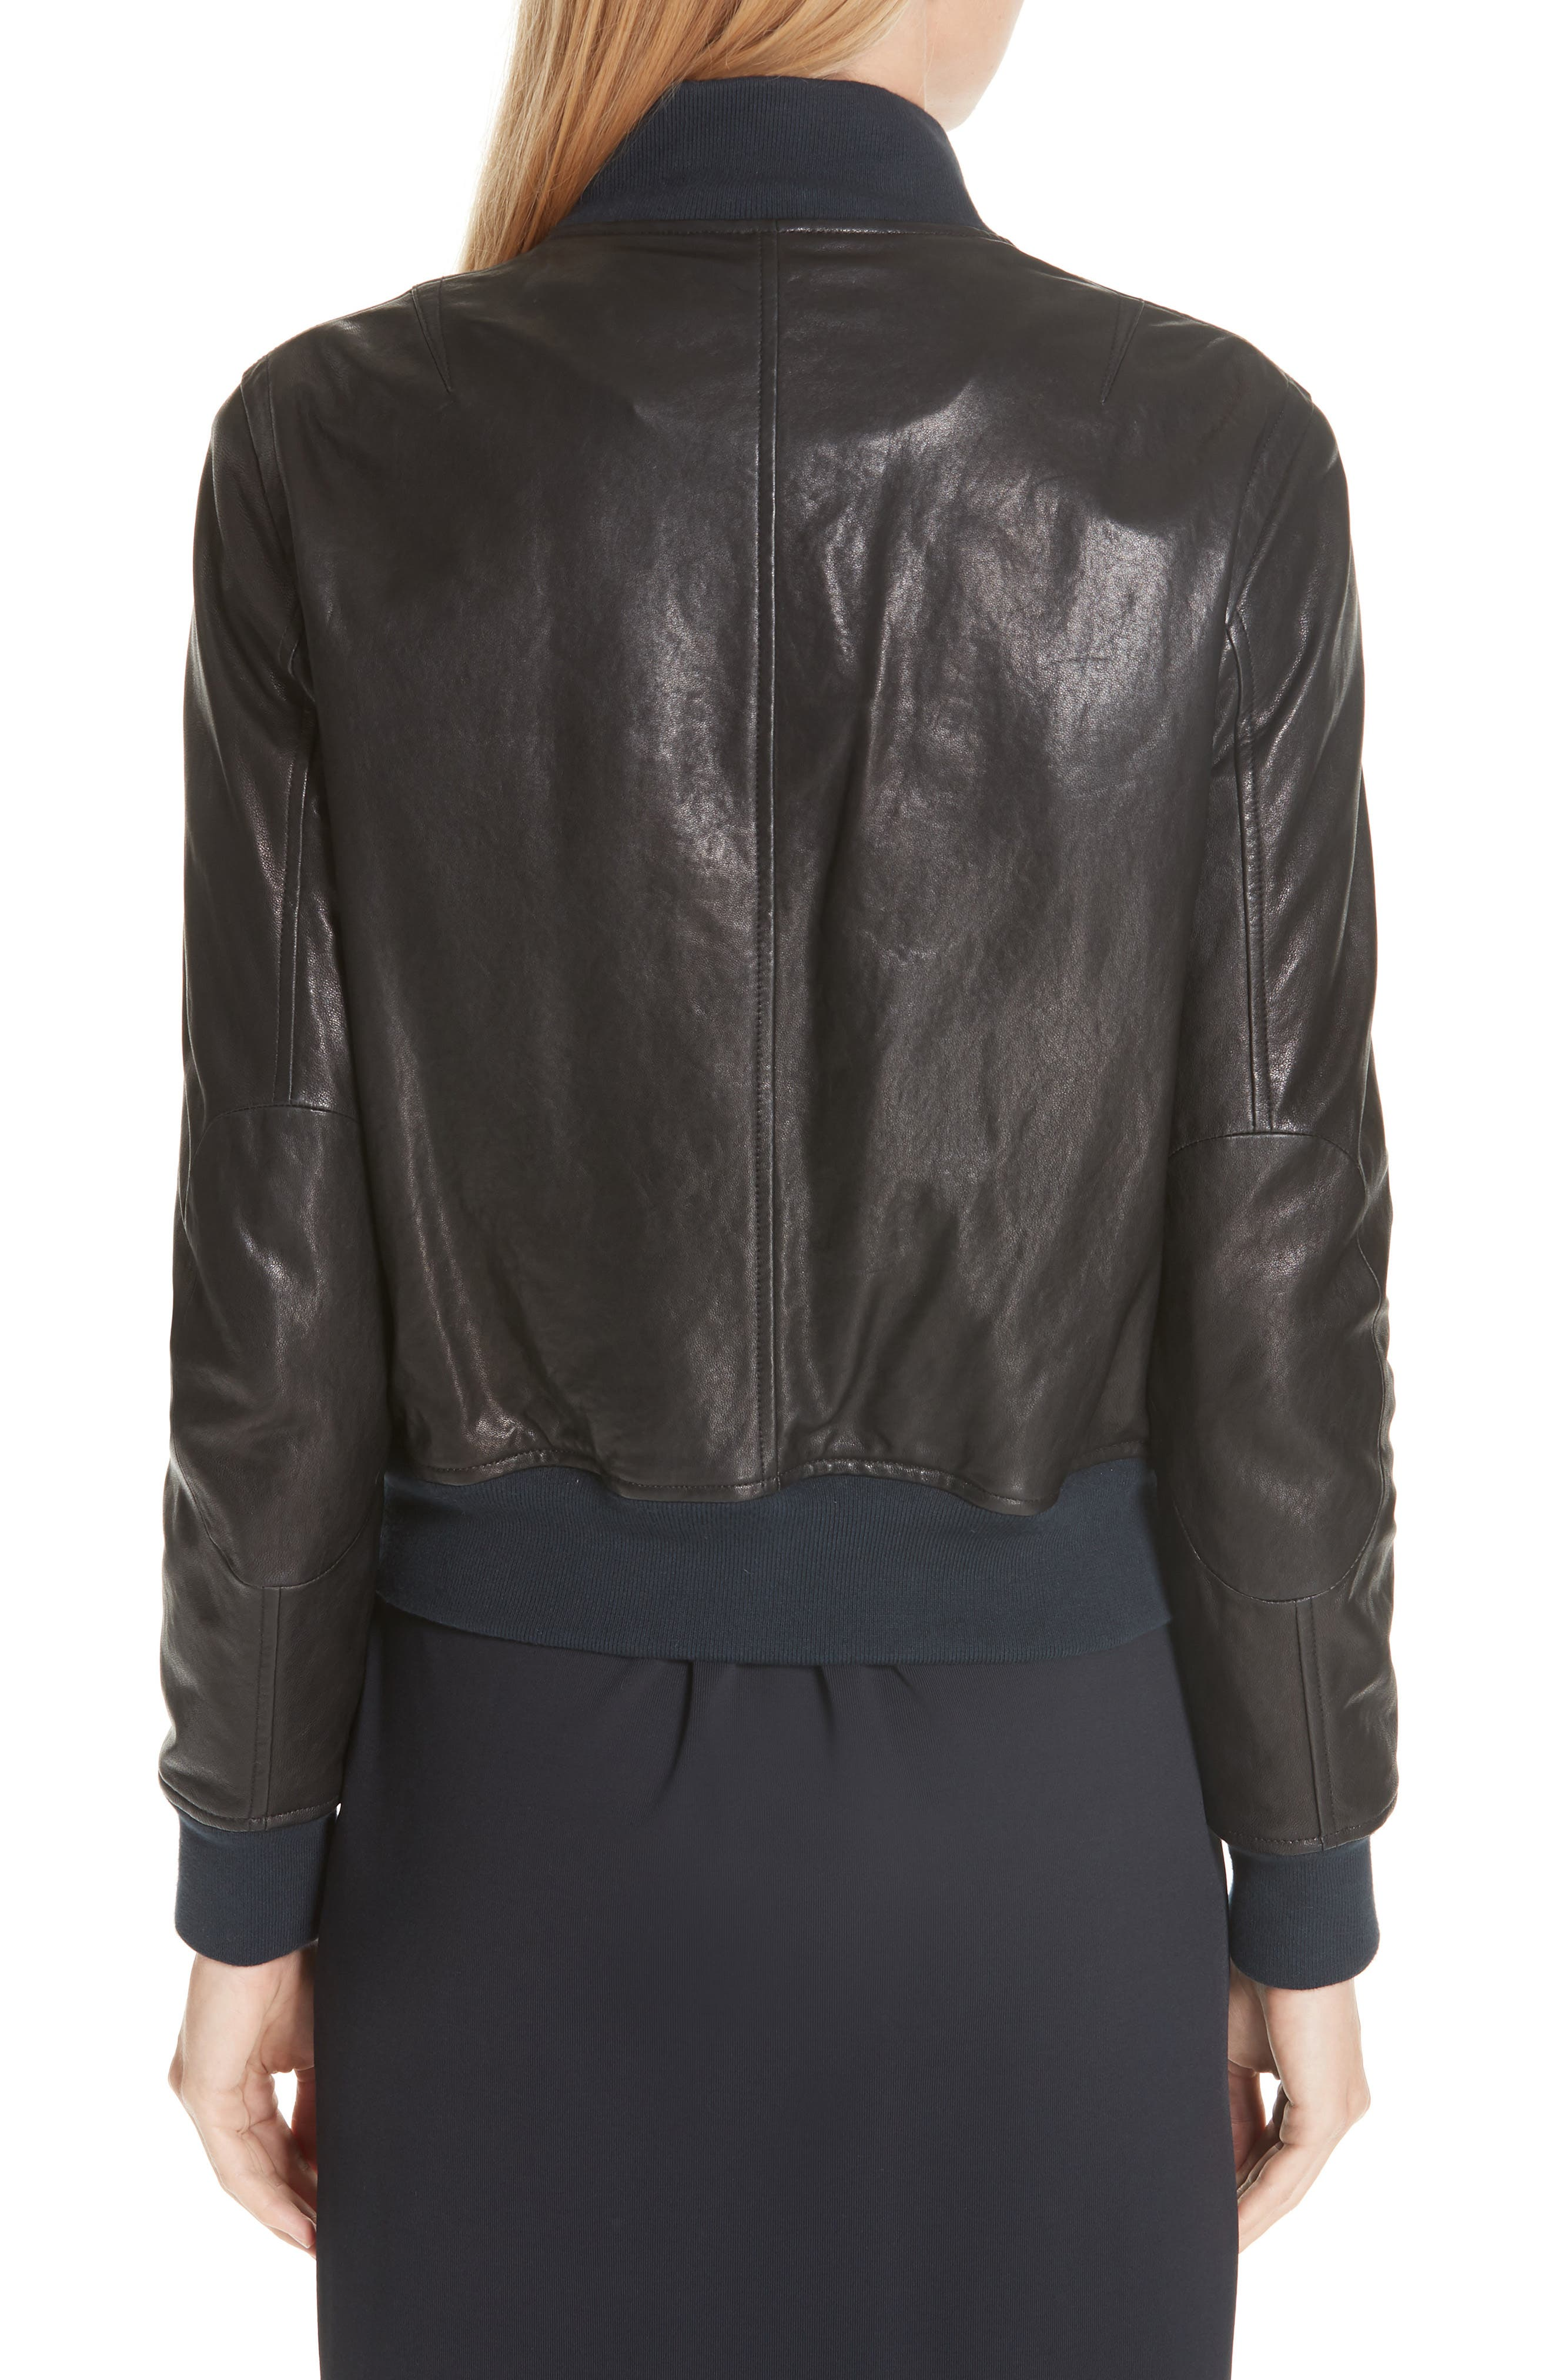 Mila Lambskin Leather Jacket,                             Alternate thumbnail 2, color,                             001